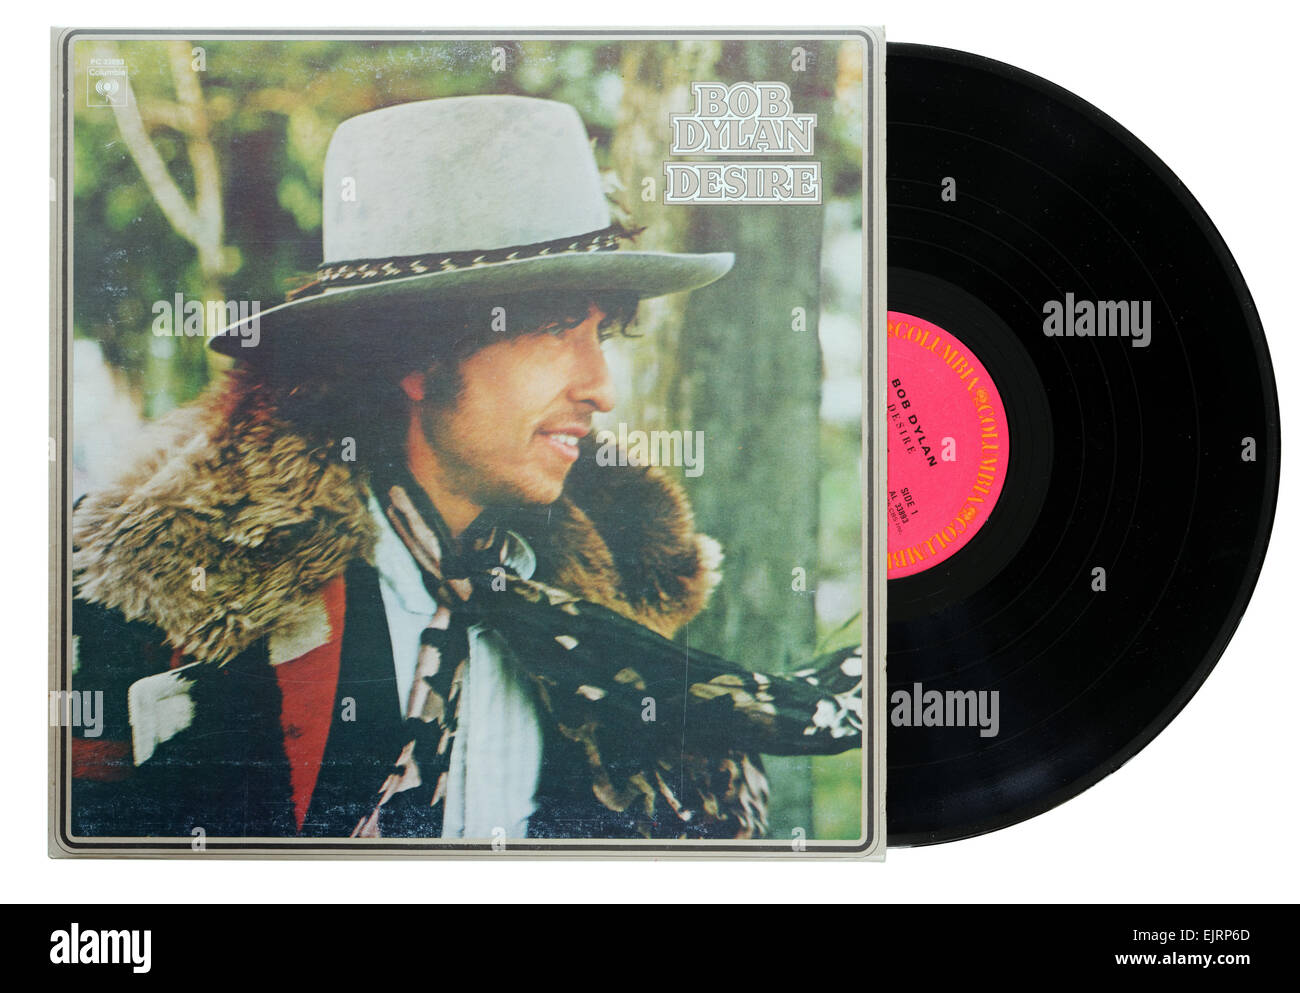 Bob Dylan Desire album Stock Photo: 80427605 - Alamy